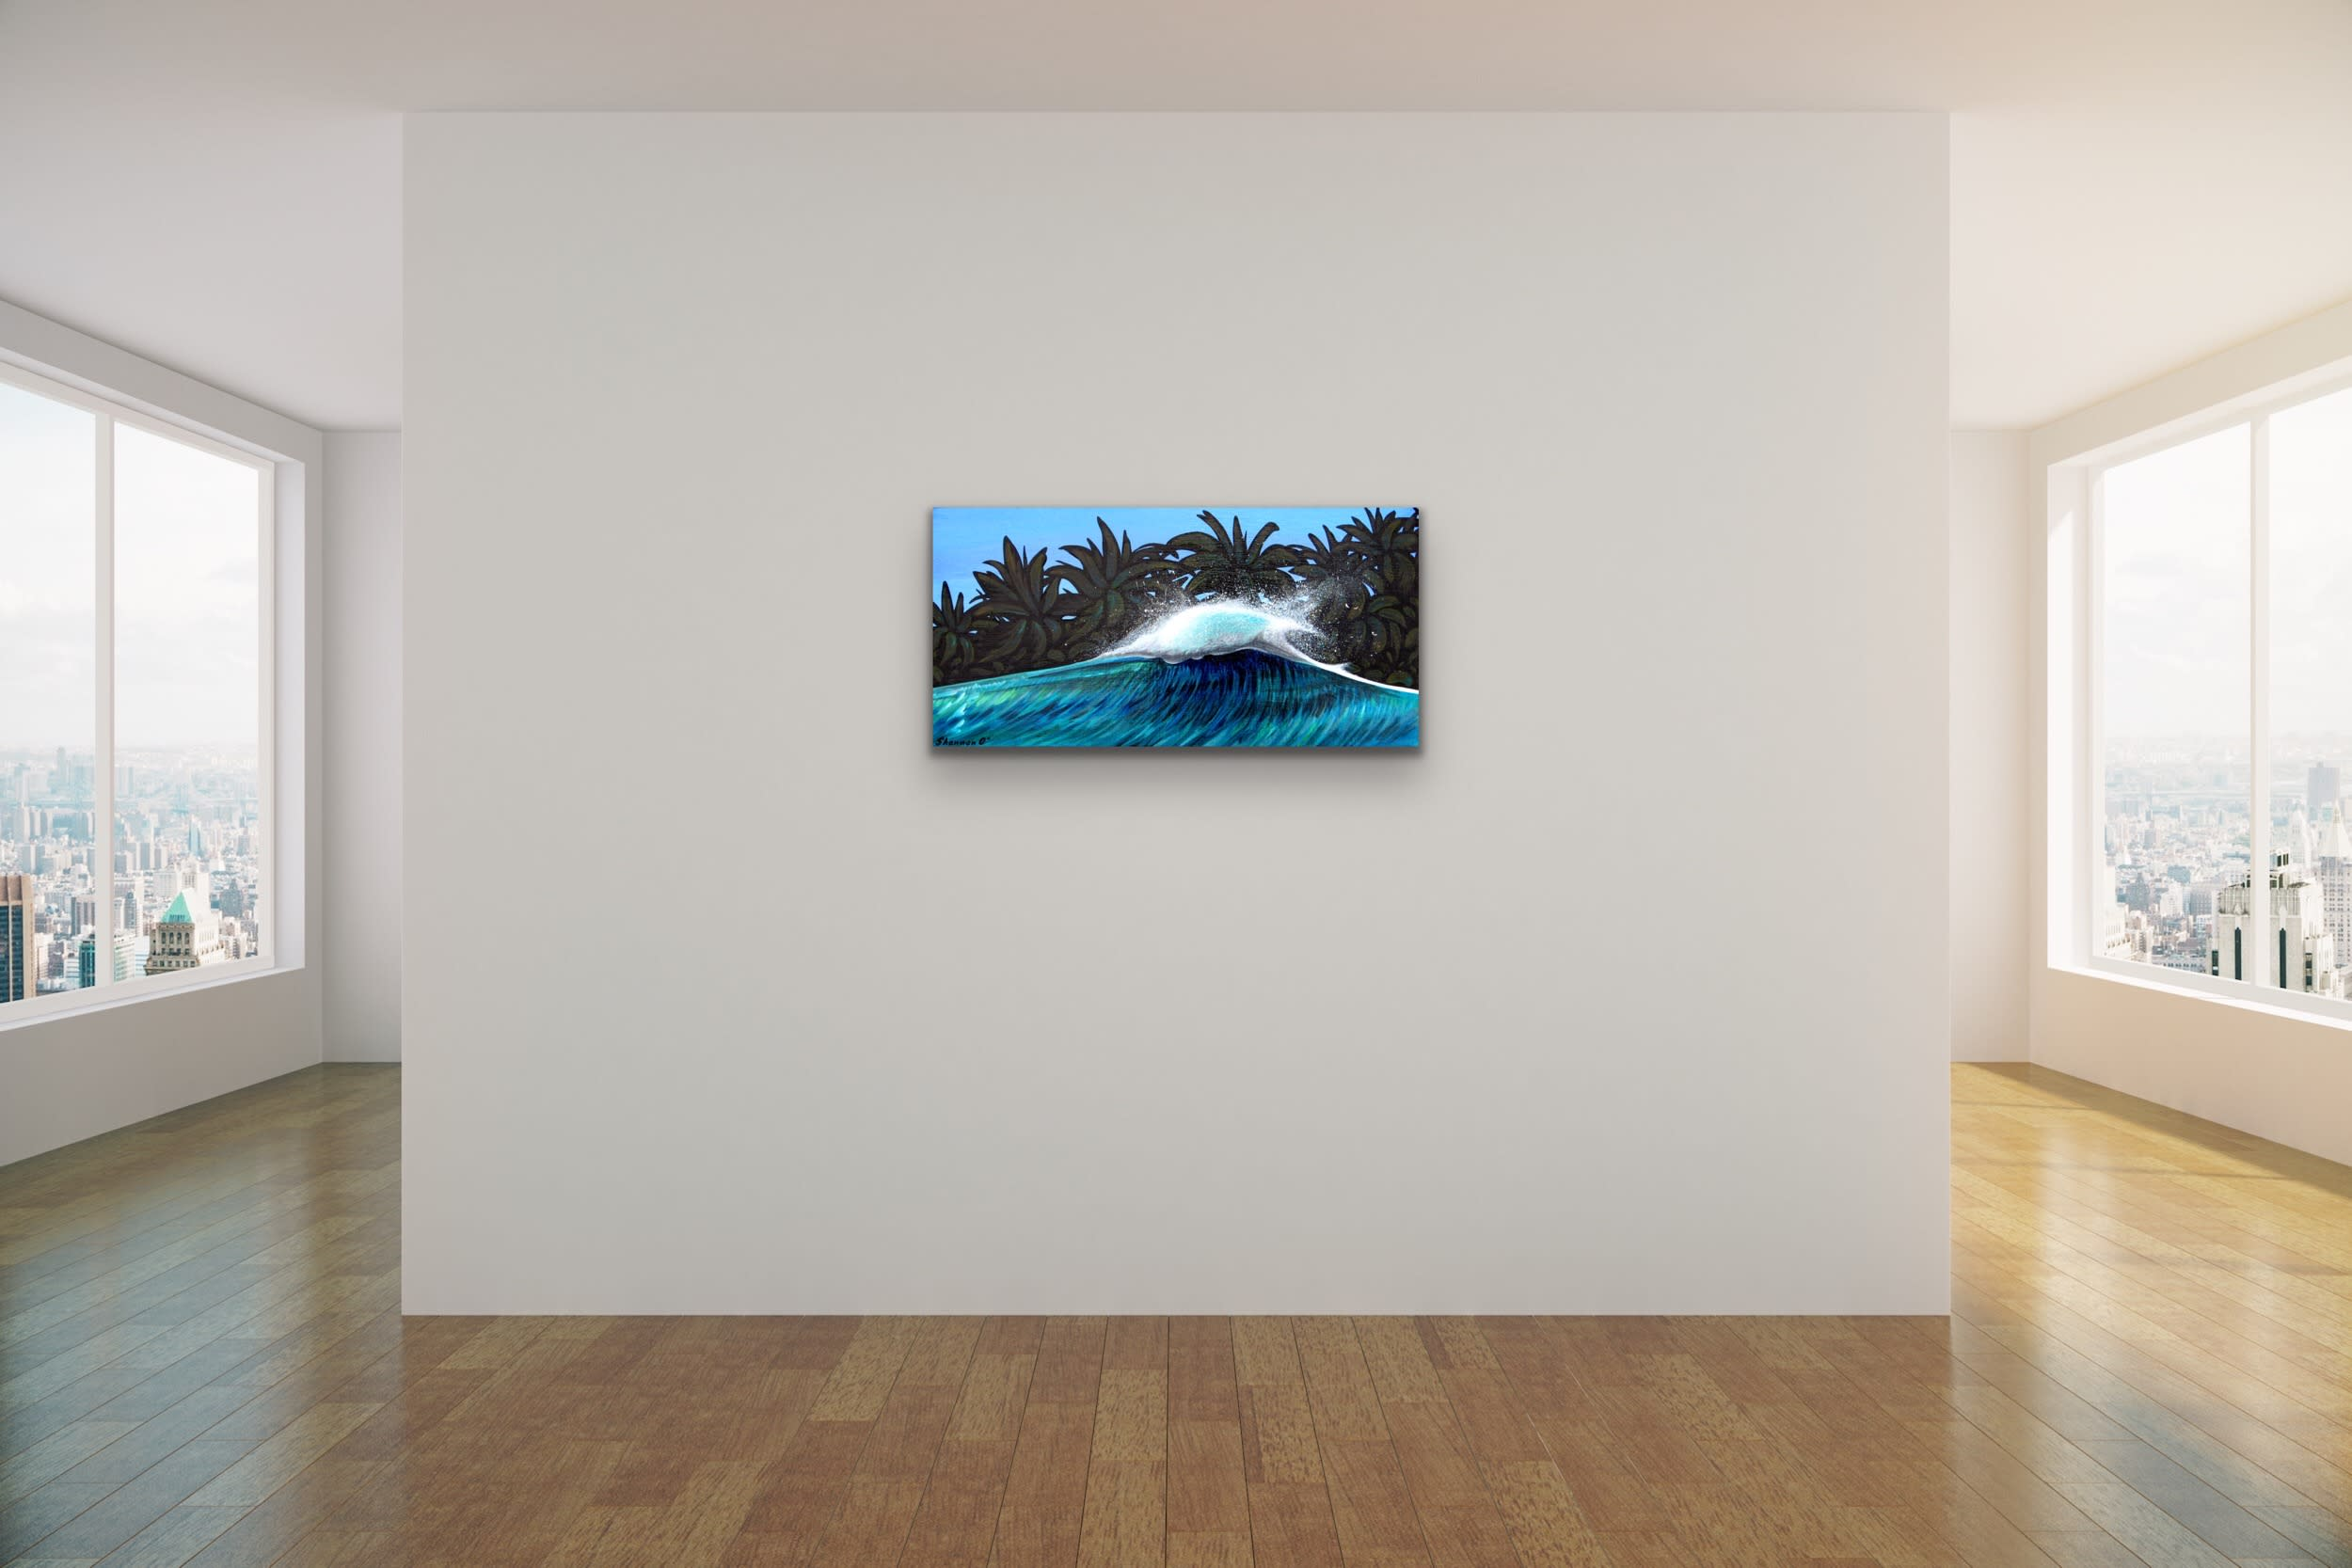 <div class='title'>           Shannon Oconnell Paintings Mock Ups Evo Art Maui Lahain Front Street Gallery Collect Popular Colorful Ocean Flowers Scenery Waves 15         </div>